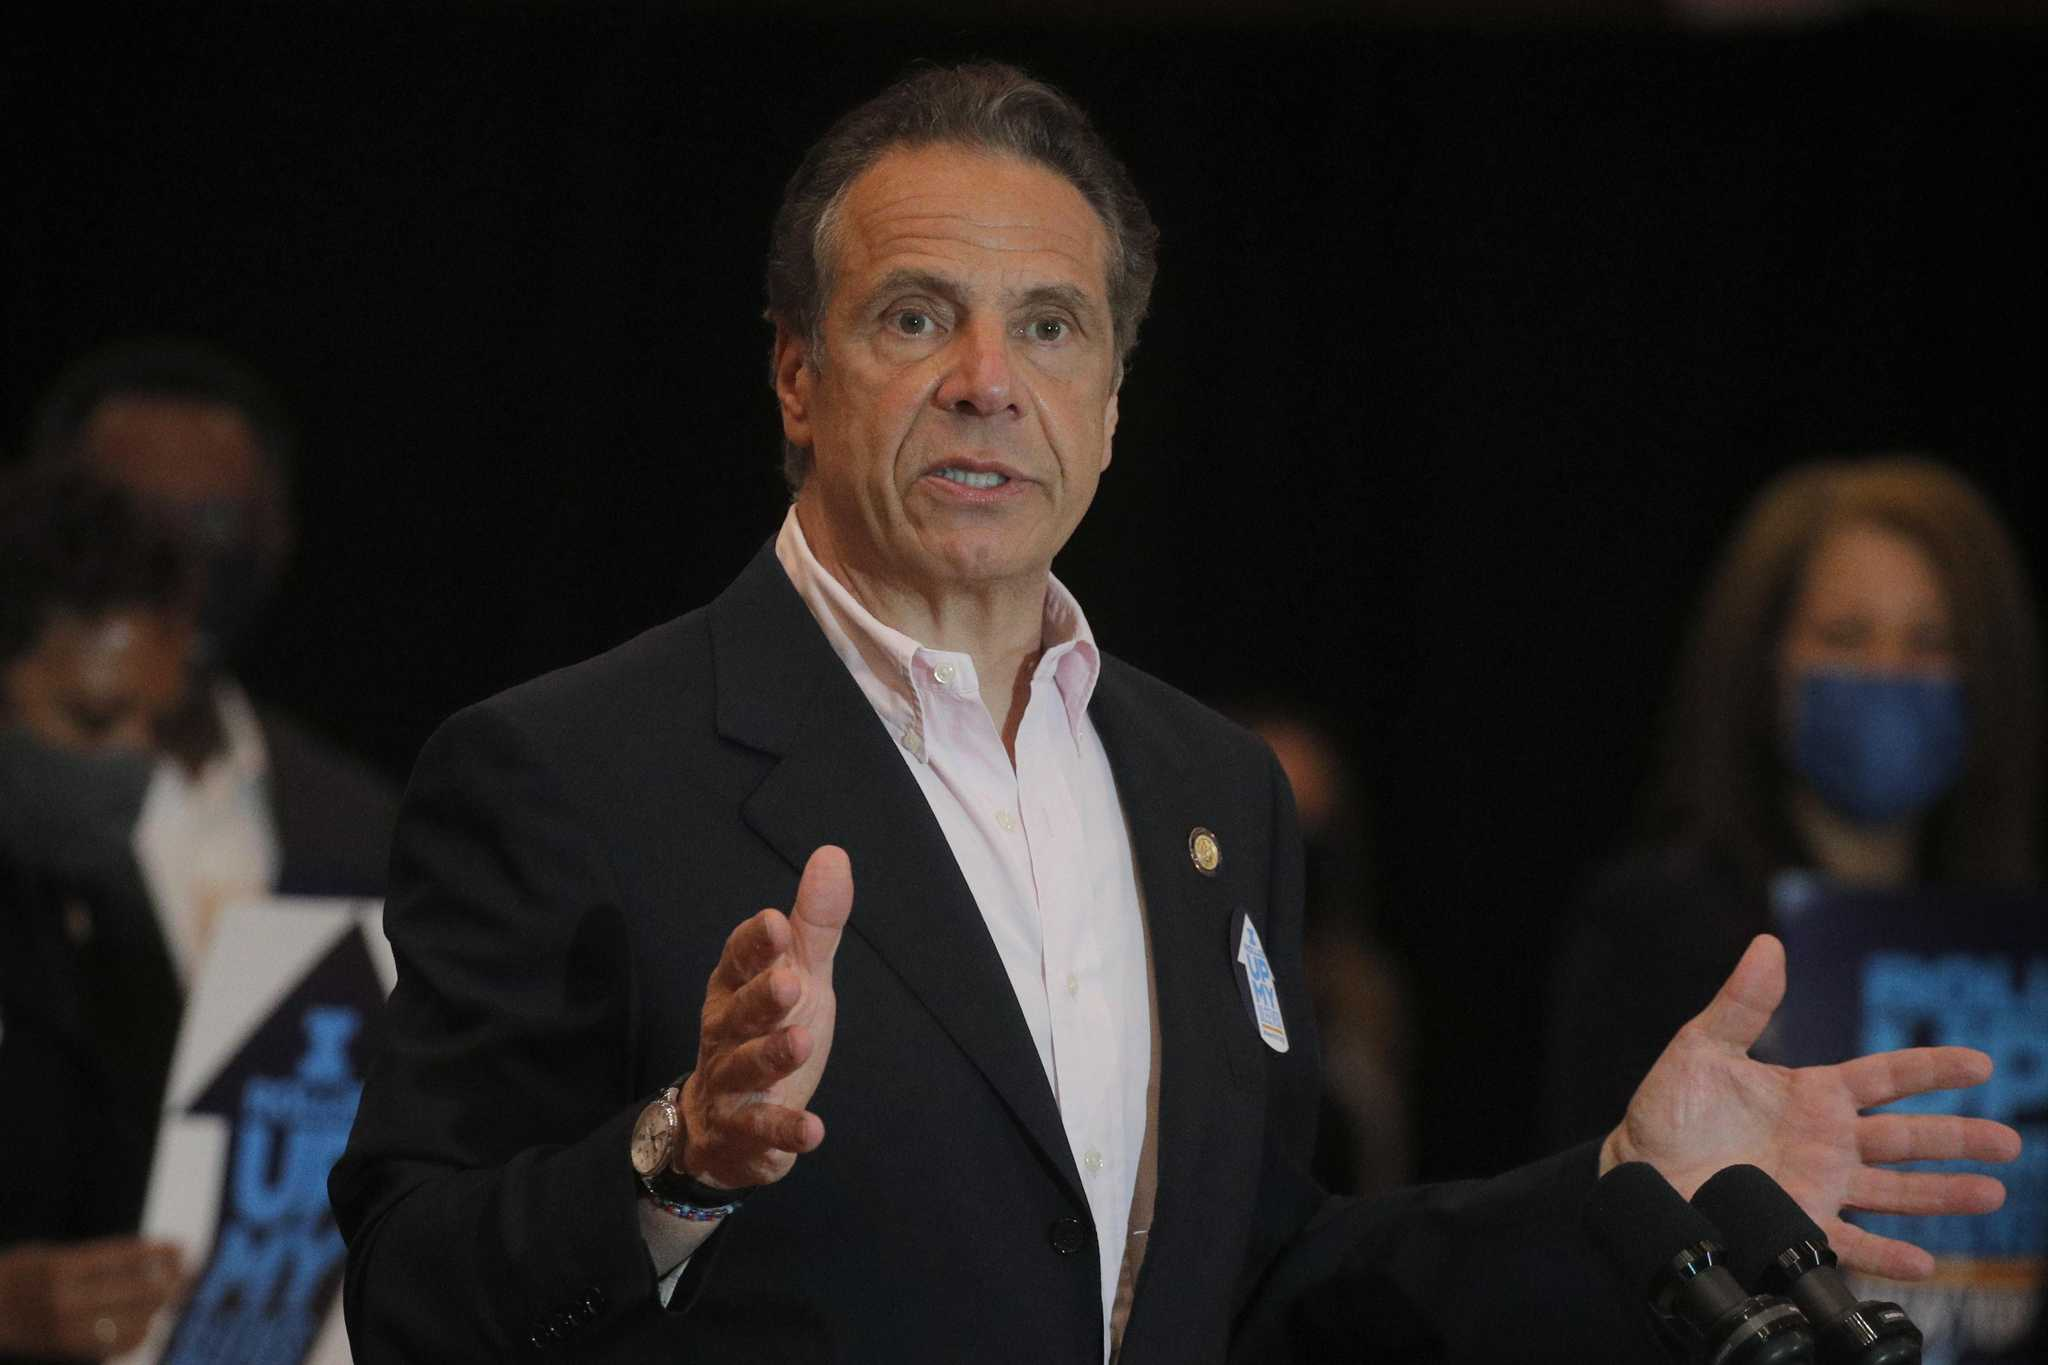 Who's paying Cuomo's lawyers? Some details are scarce